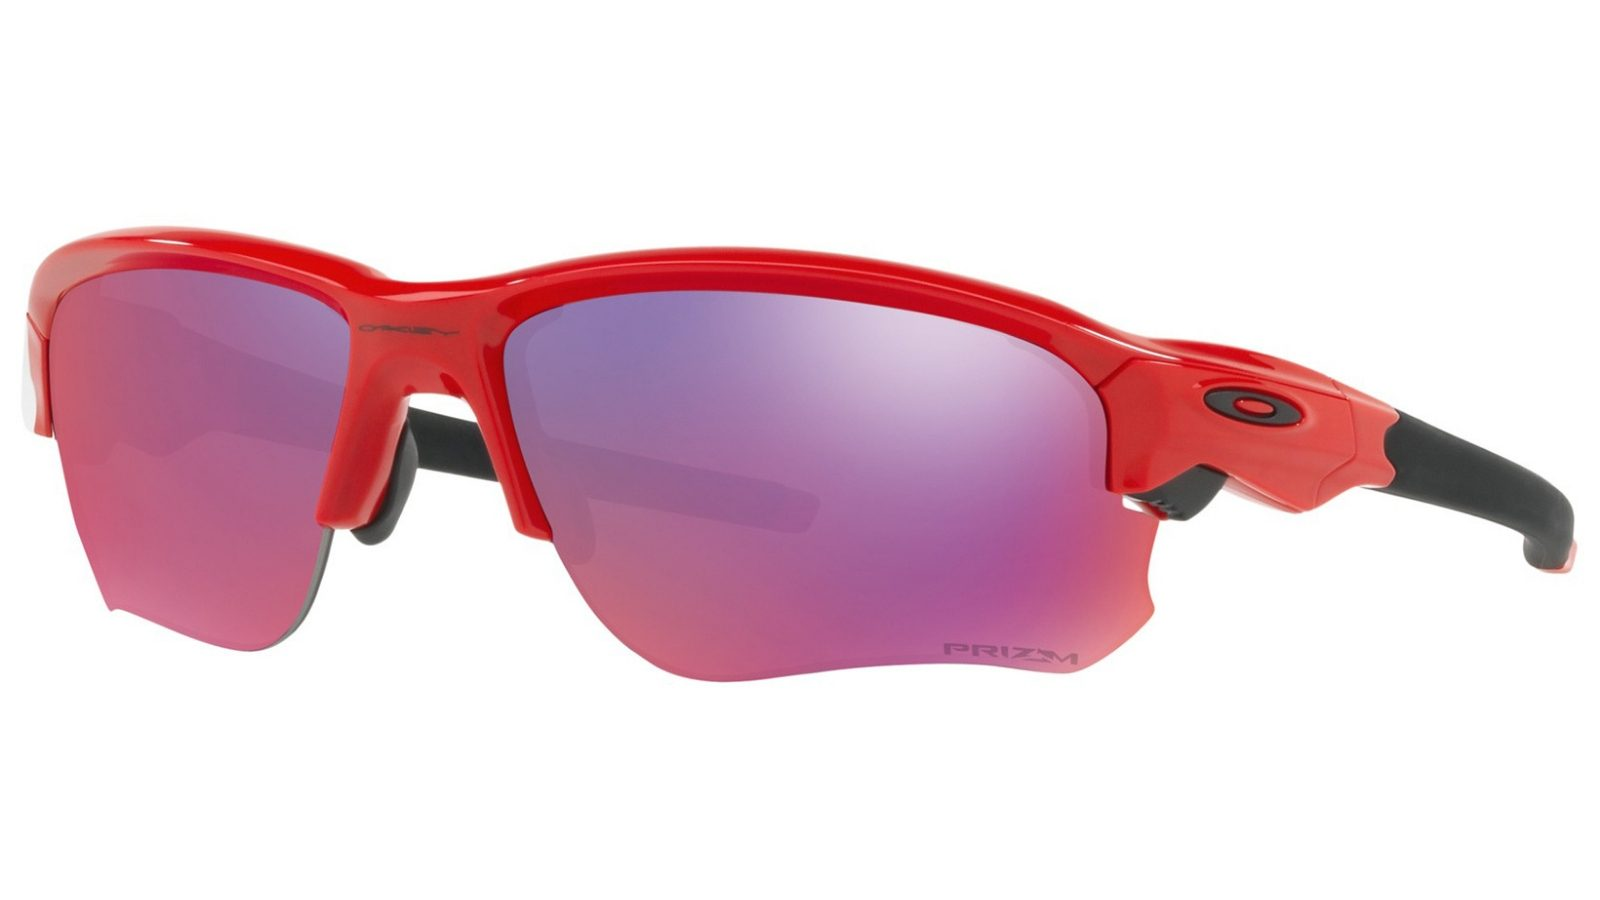 Evans Black 50Off At Sunglasses Deals Friday Oakley — UGzqpMVS